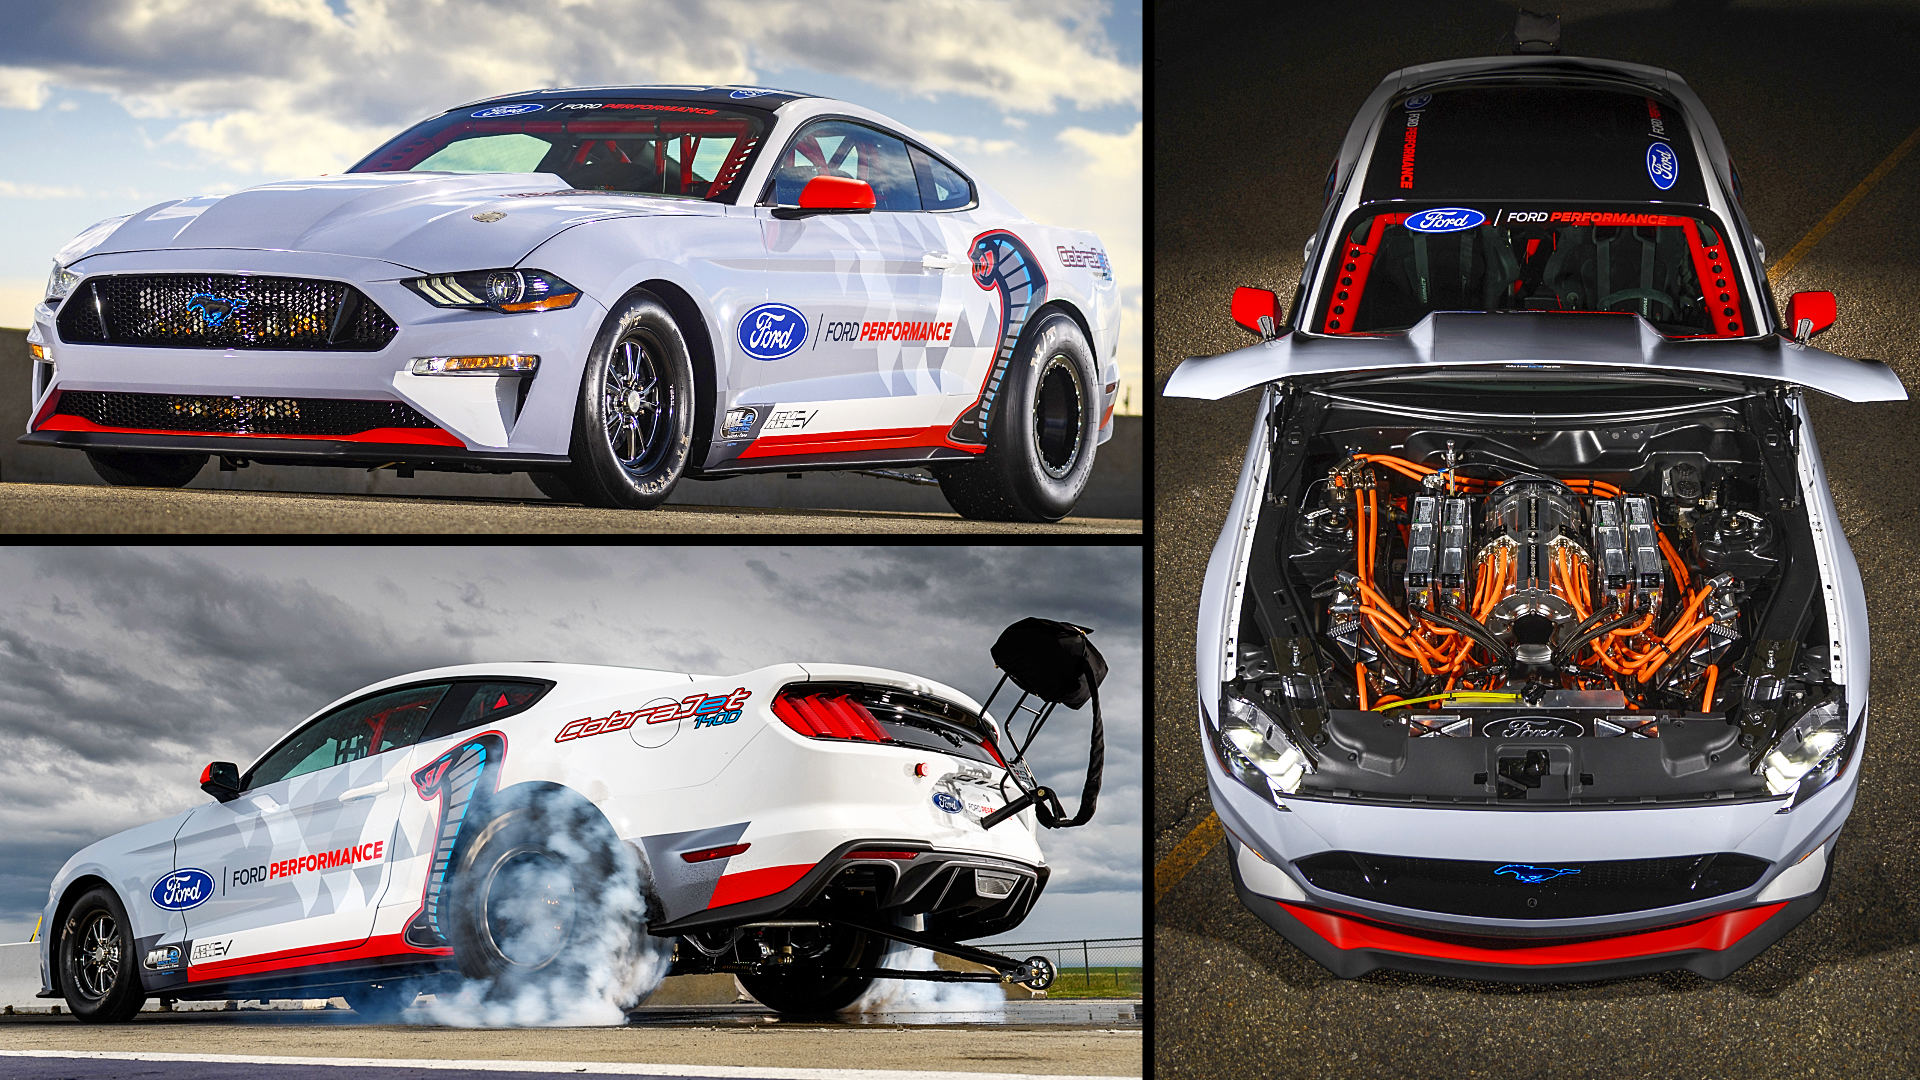 Ford Mustang Cobra Jet Electric Race Car